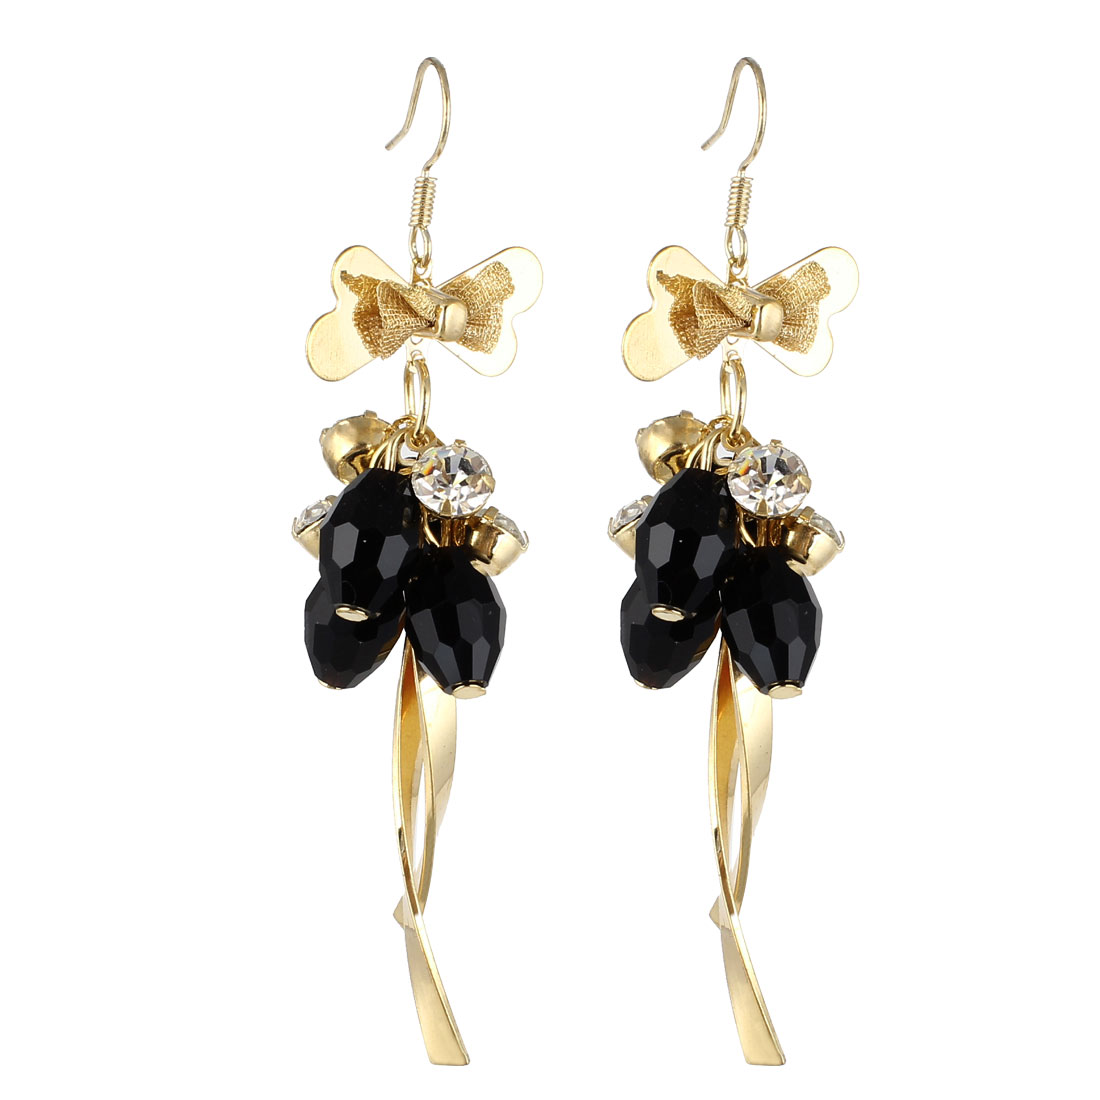 Lady Pair Plastic Beads Inlaid Decor Dangling Hook Earrings Black Gold Tone